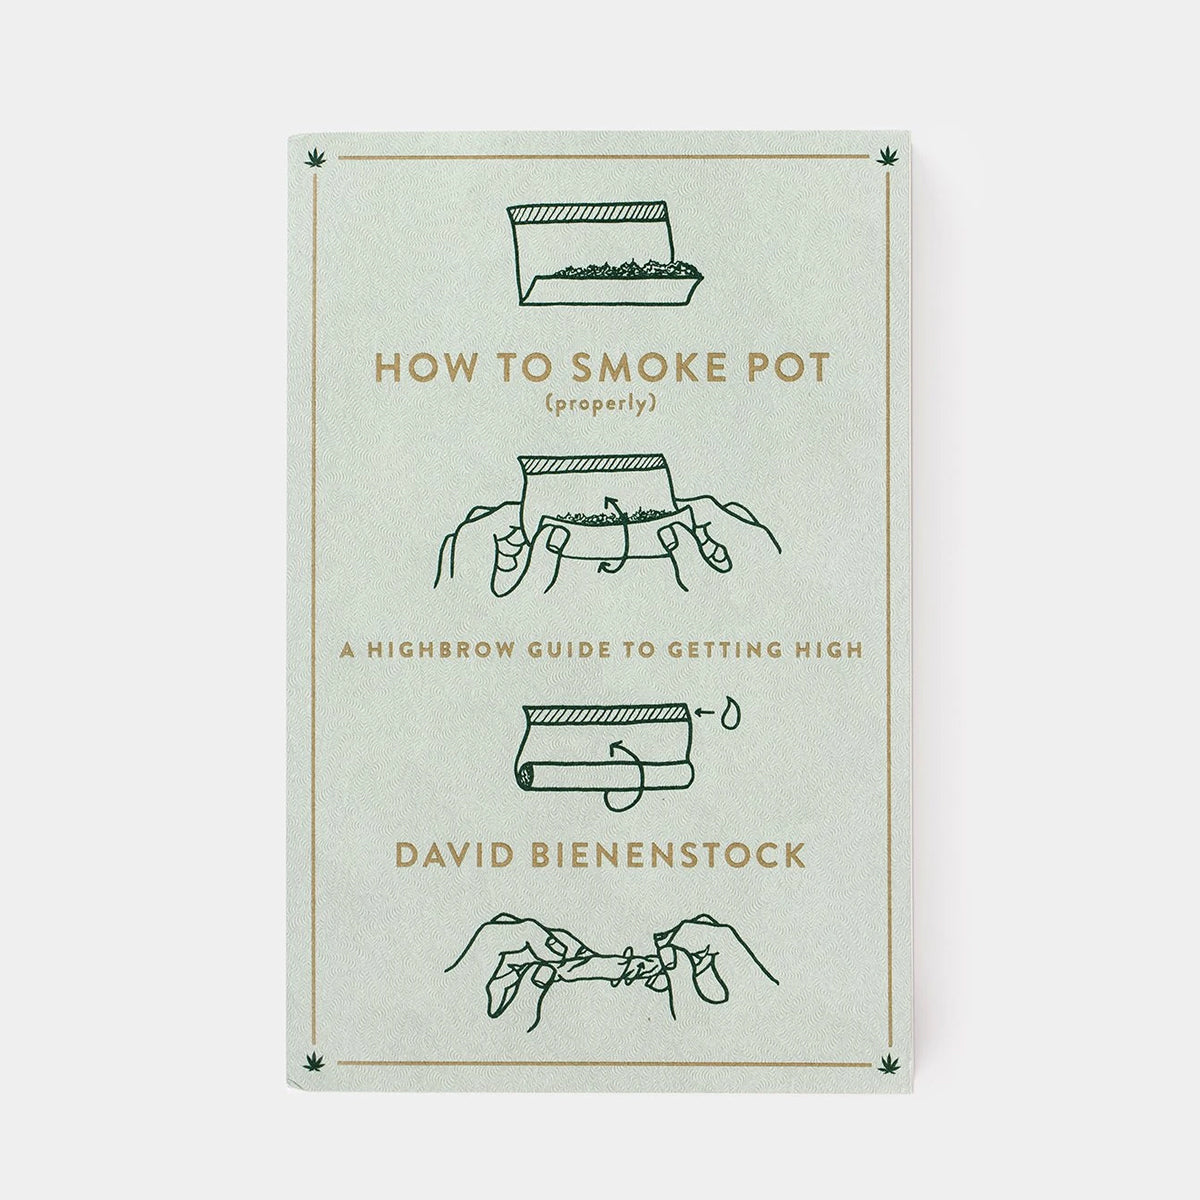 How to Smoke Pot (Properly)